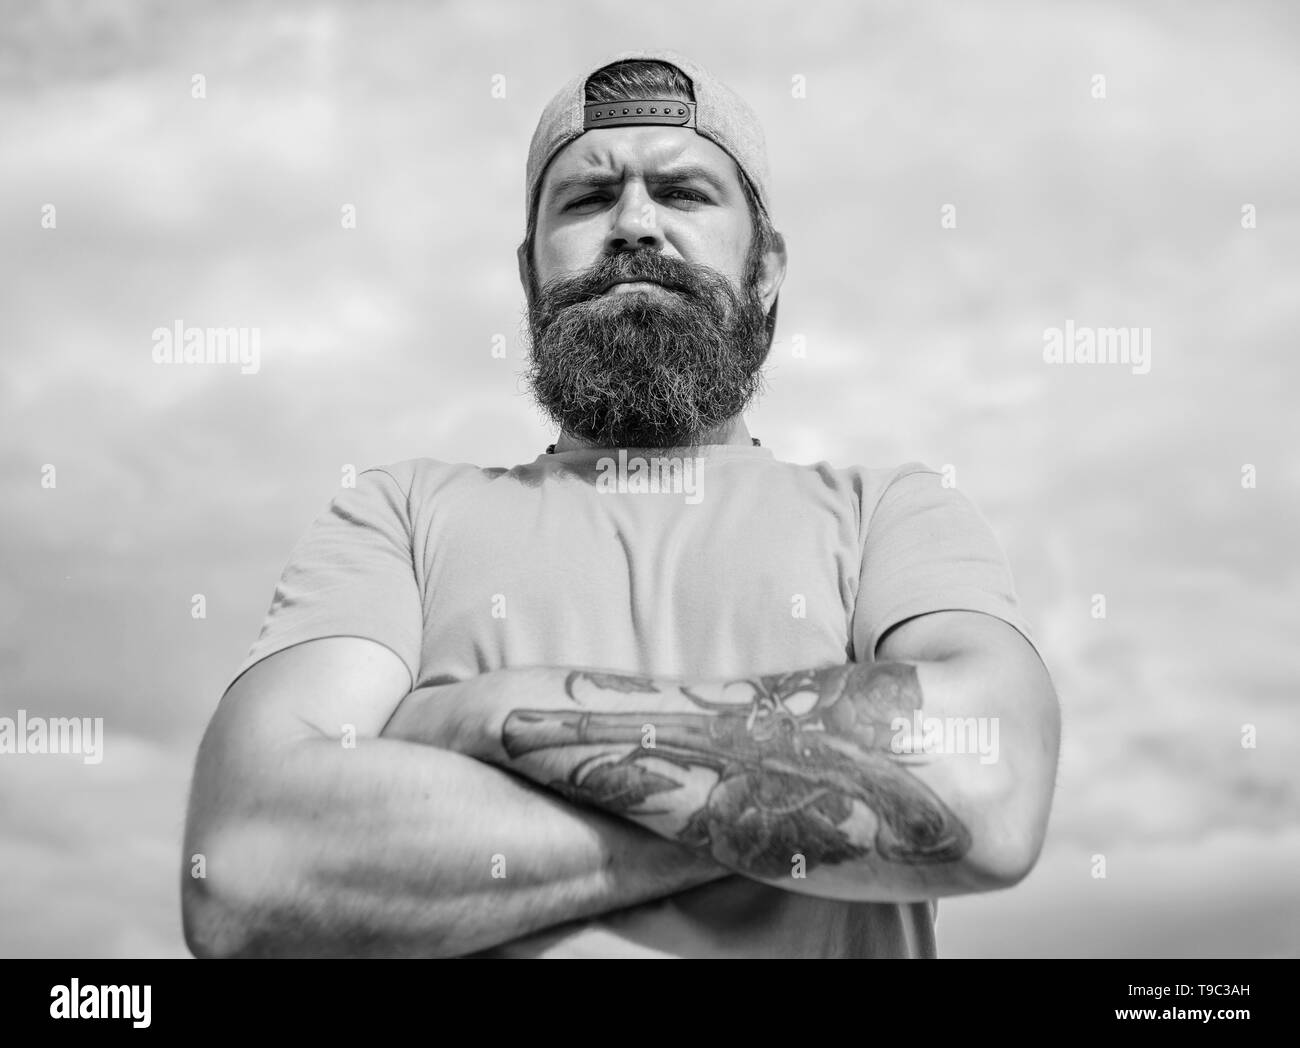 Too serious right now. Man bearded muscular brutal hipster outdoors sky background. Masculinity and brutality. Lumbersexual tattooed well groomed hipster. Hipster with mustache and long beard. - Stock Image